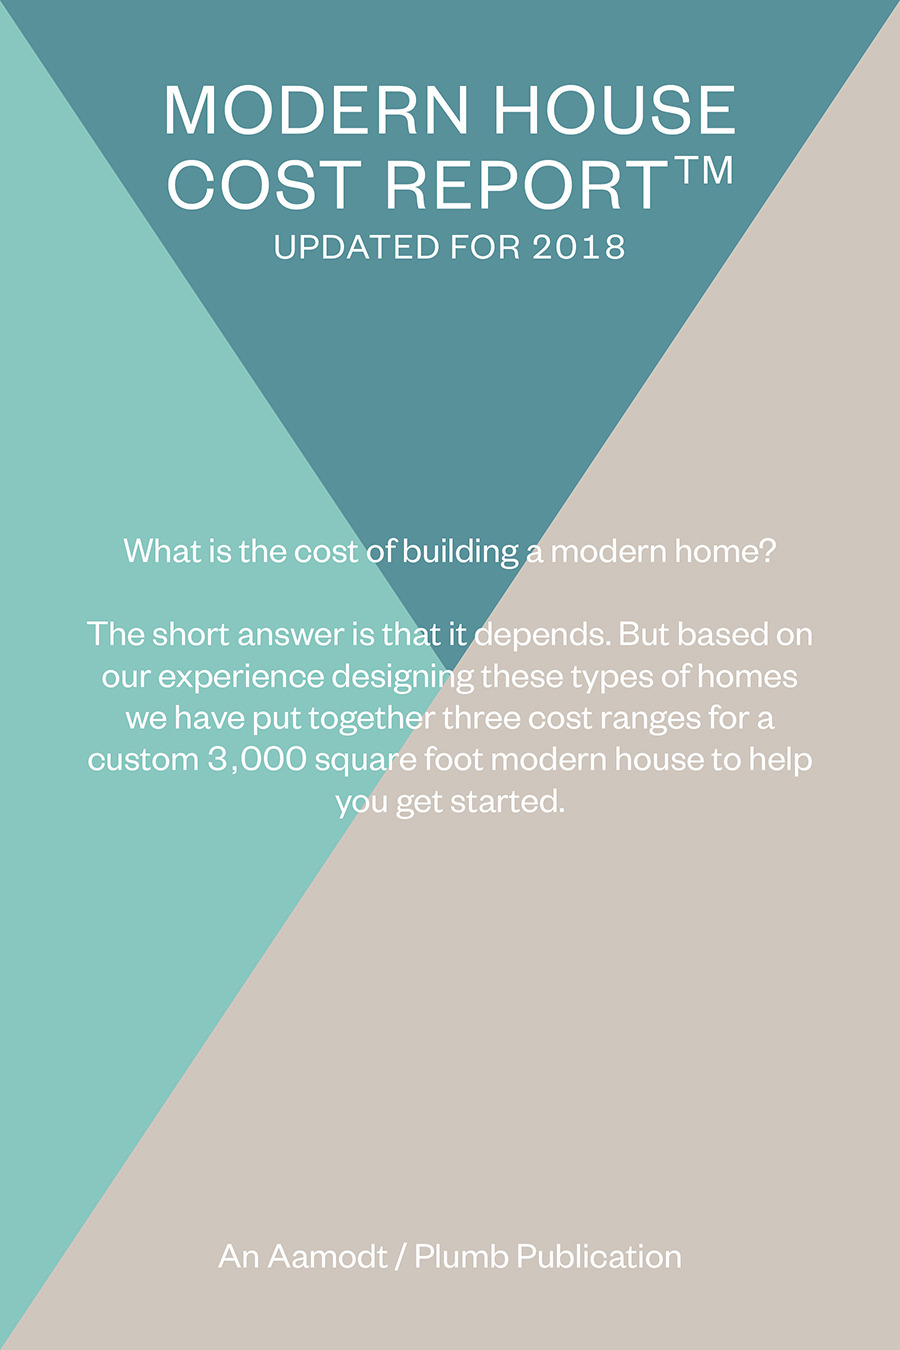 How Much Does It Cost to Build A Modern House Unique Free Report How Much Does It Cost to Build A Modern House